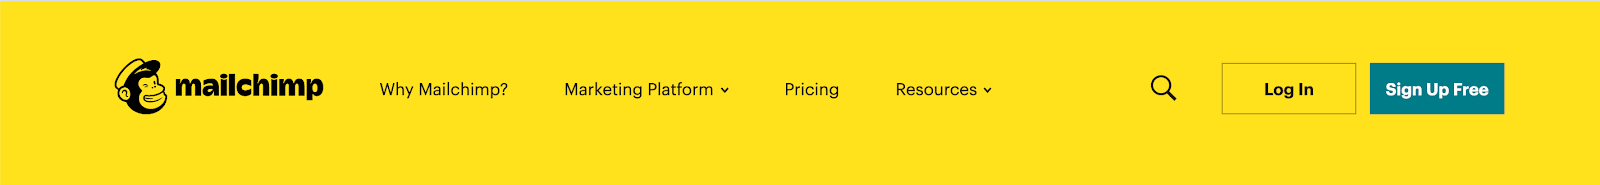 Mailchimp new design header